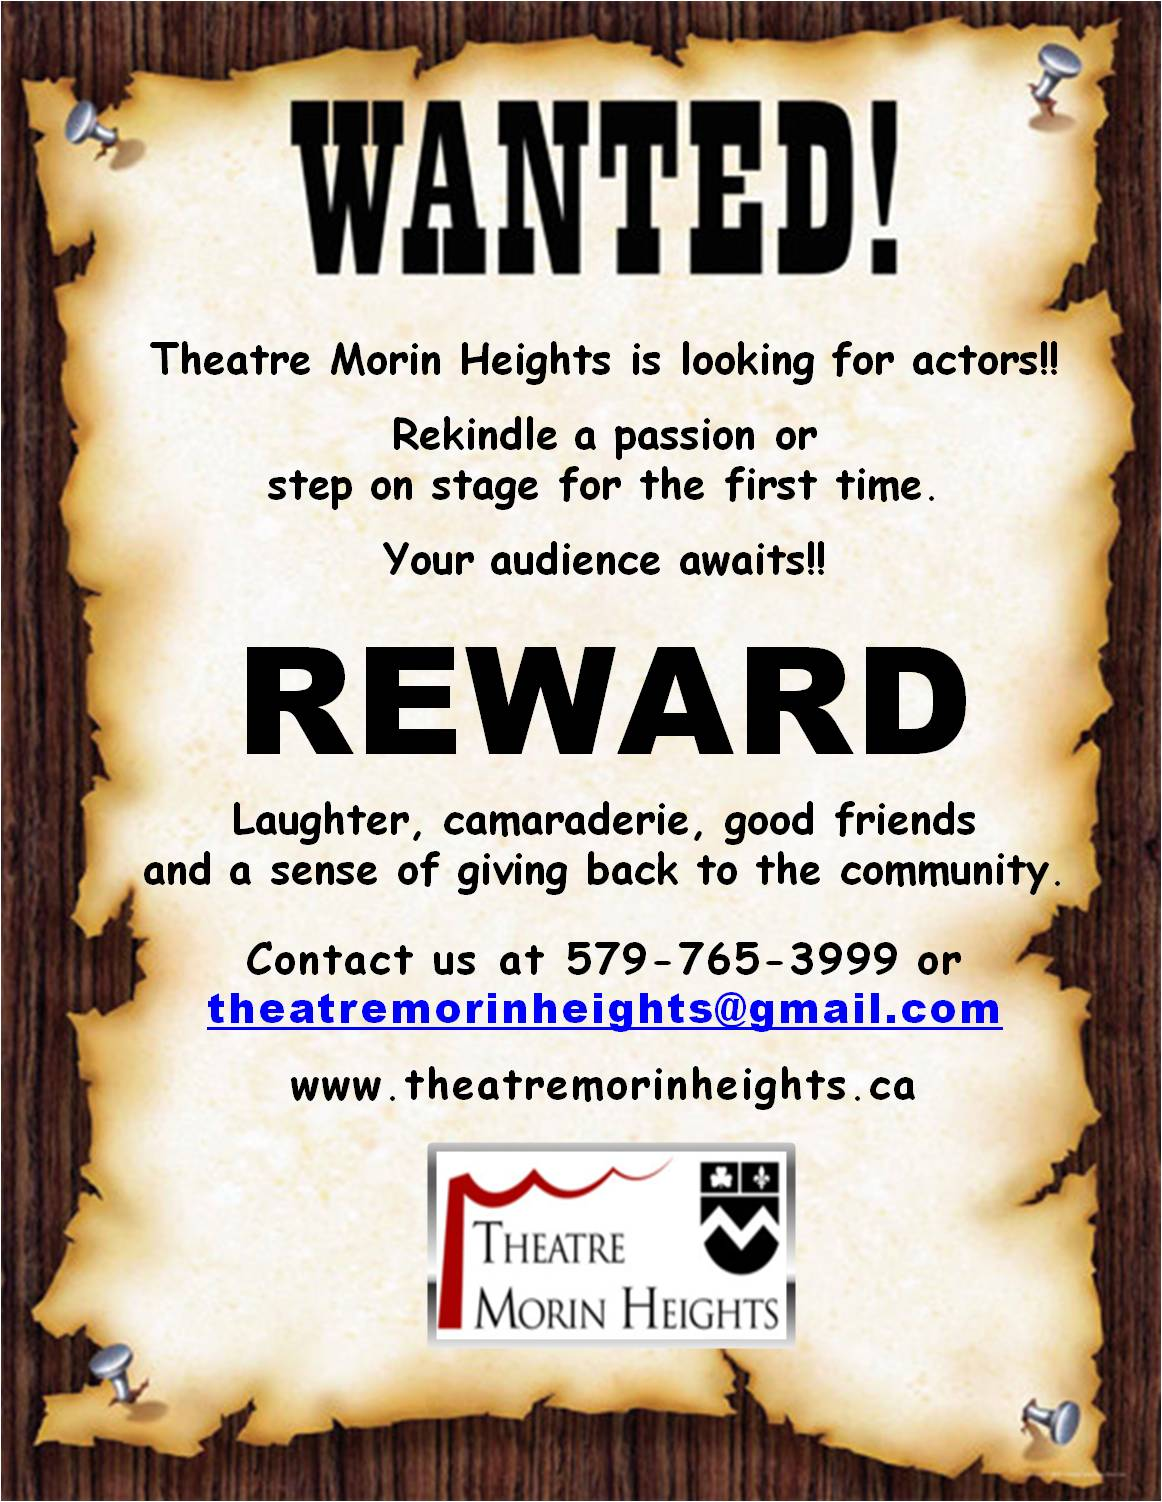 Wanted Poster final